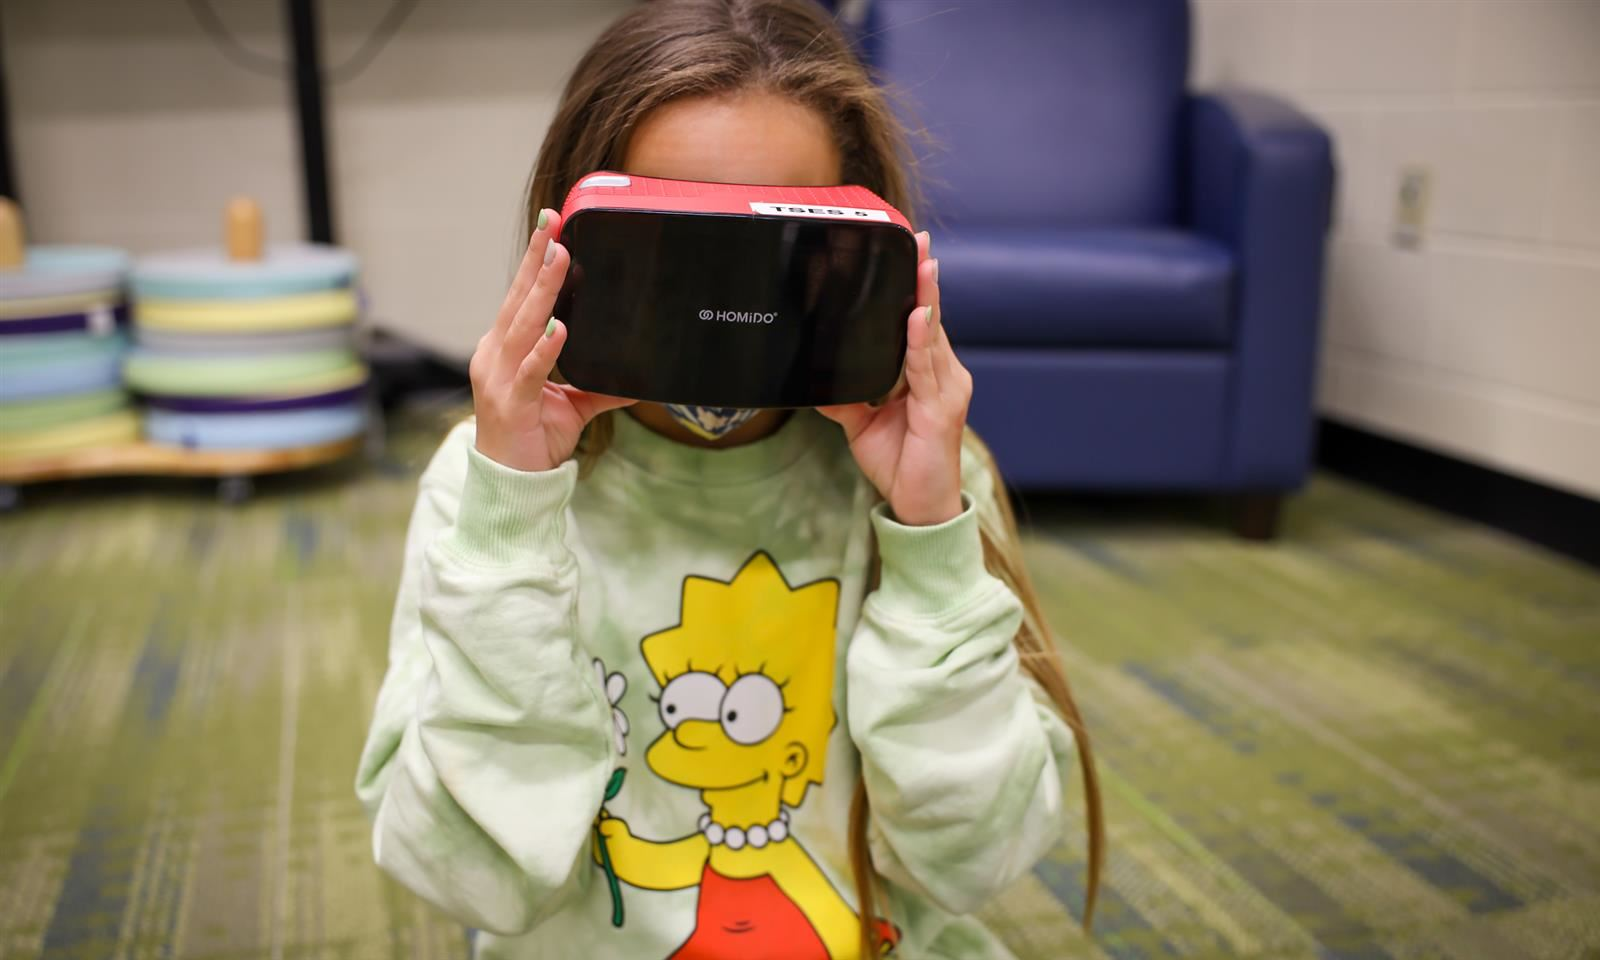 Student uses virtual reality headset